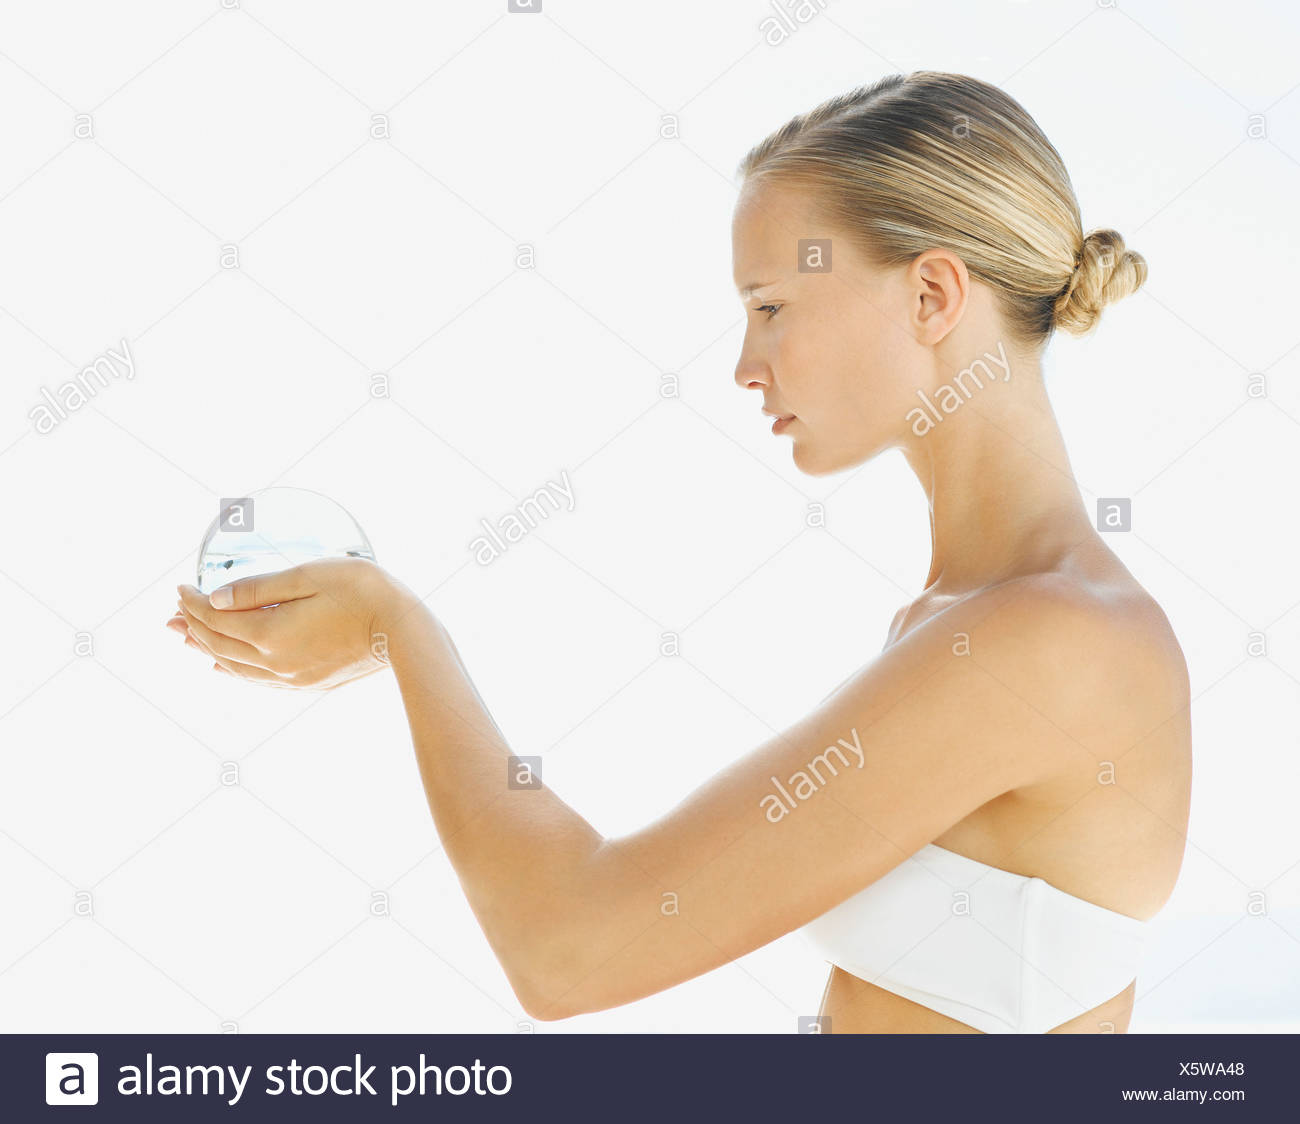 Woman holding an orb in her hands - Stock Image